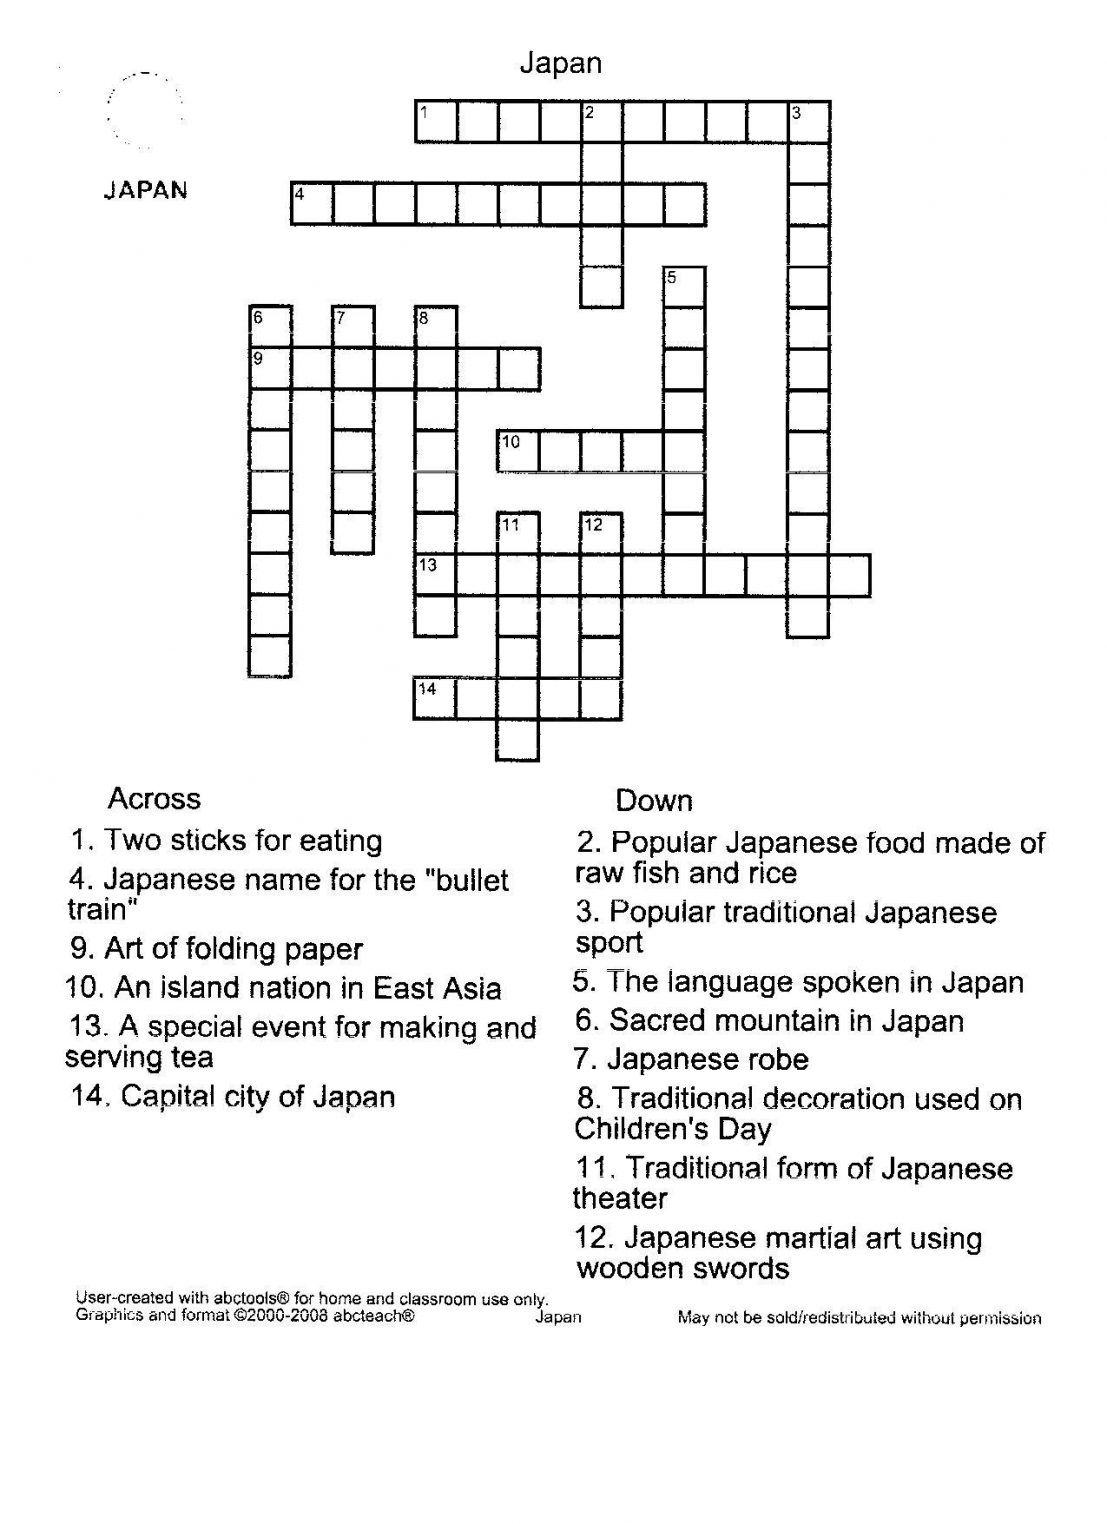 Free Crossword Puzzle Maker Printable - Hashtag Bg - Free Crossword - Printable Homemade Crossword Puzzles